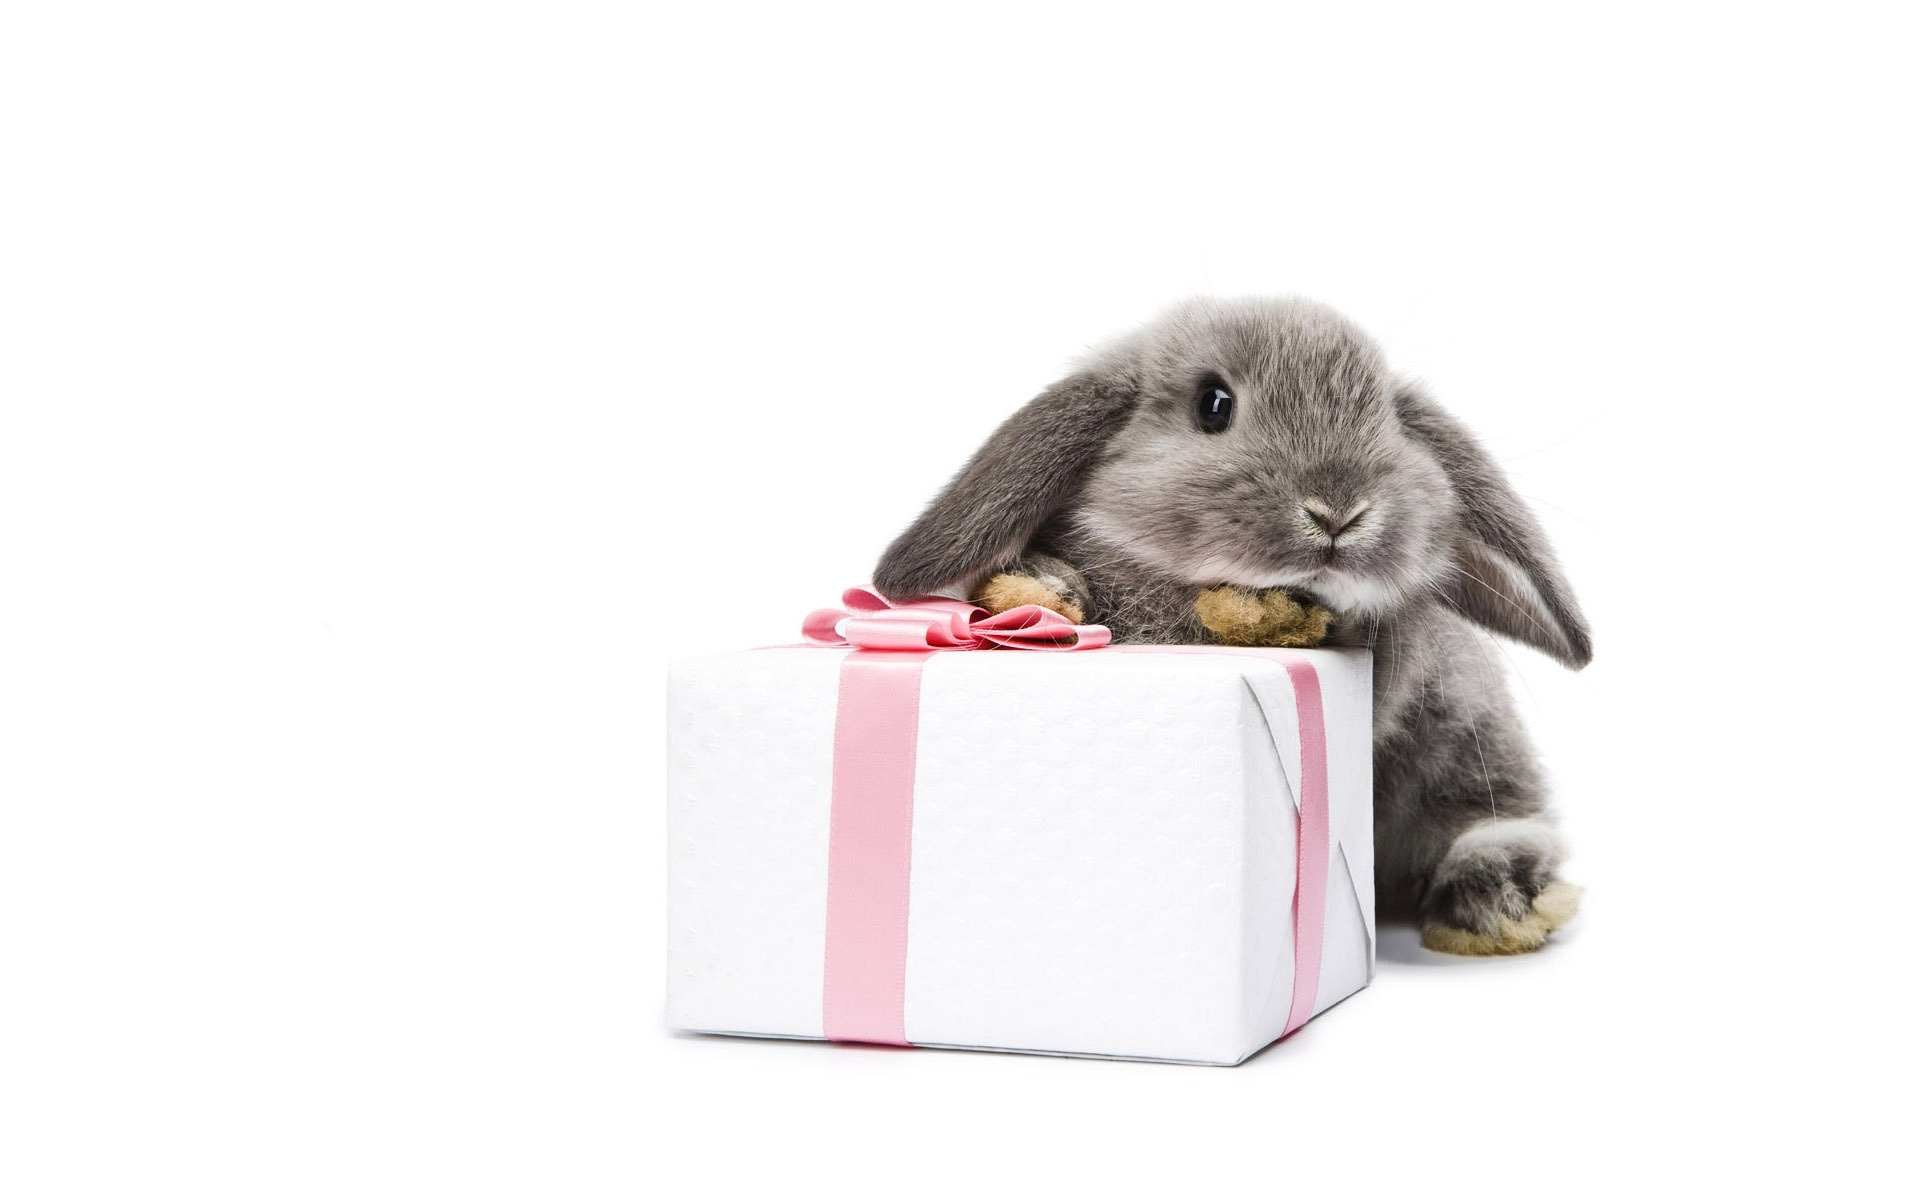 48766 download wallpaper Animals, Rabbits screensavers and pictures for free